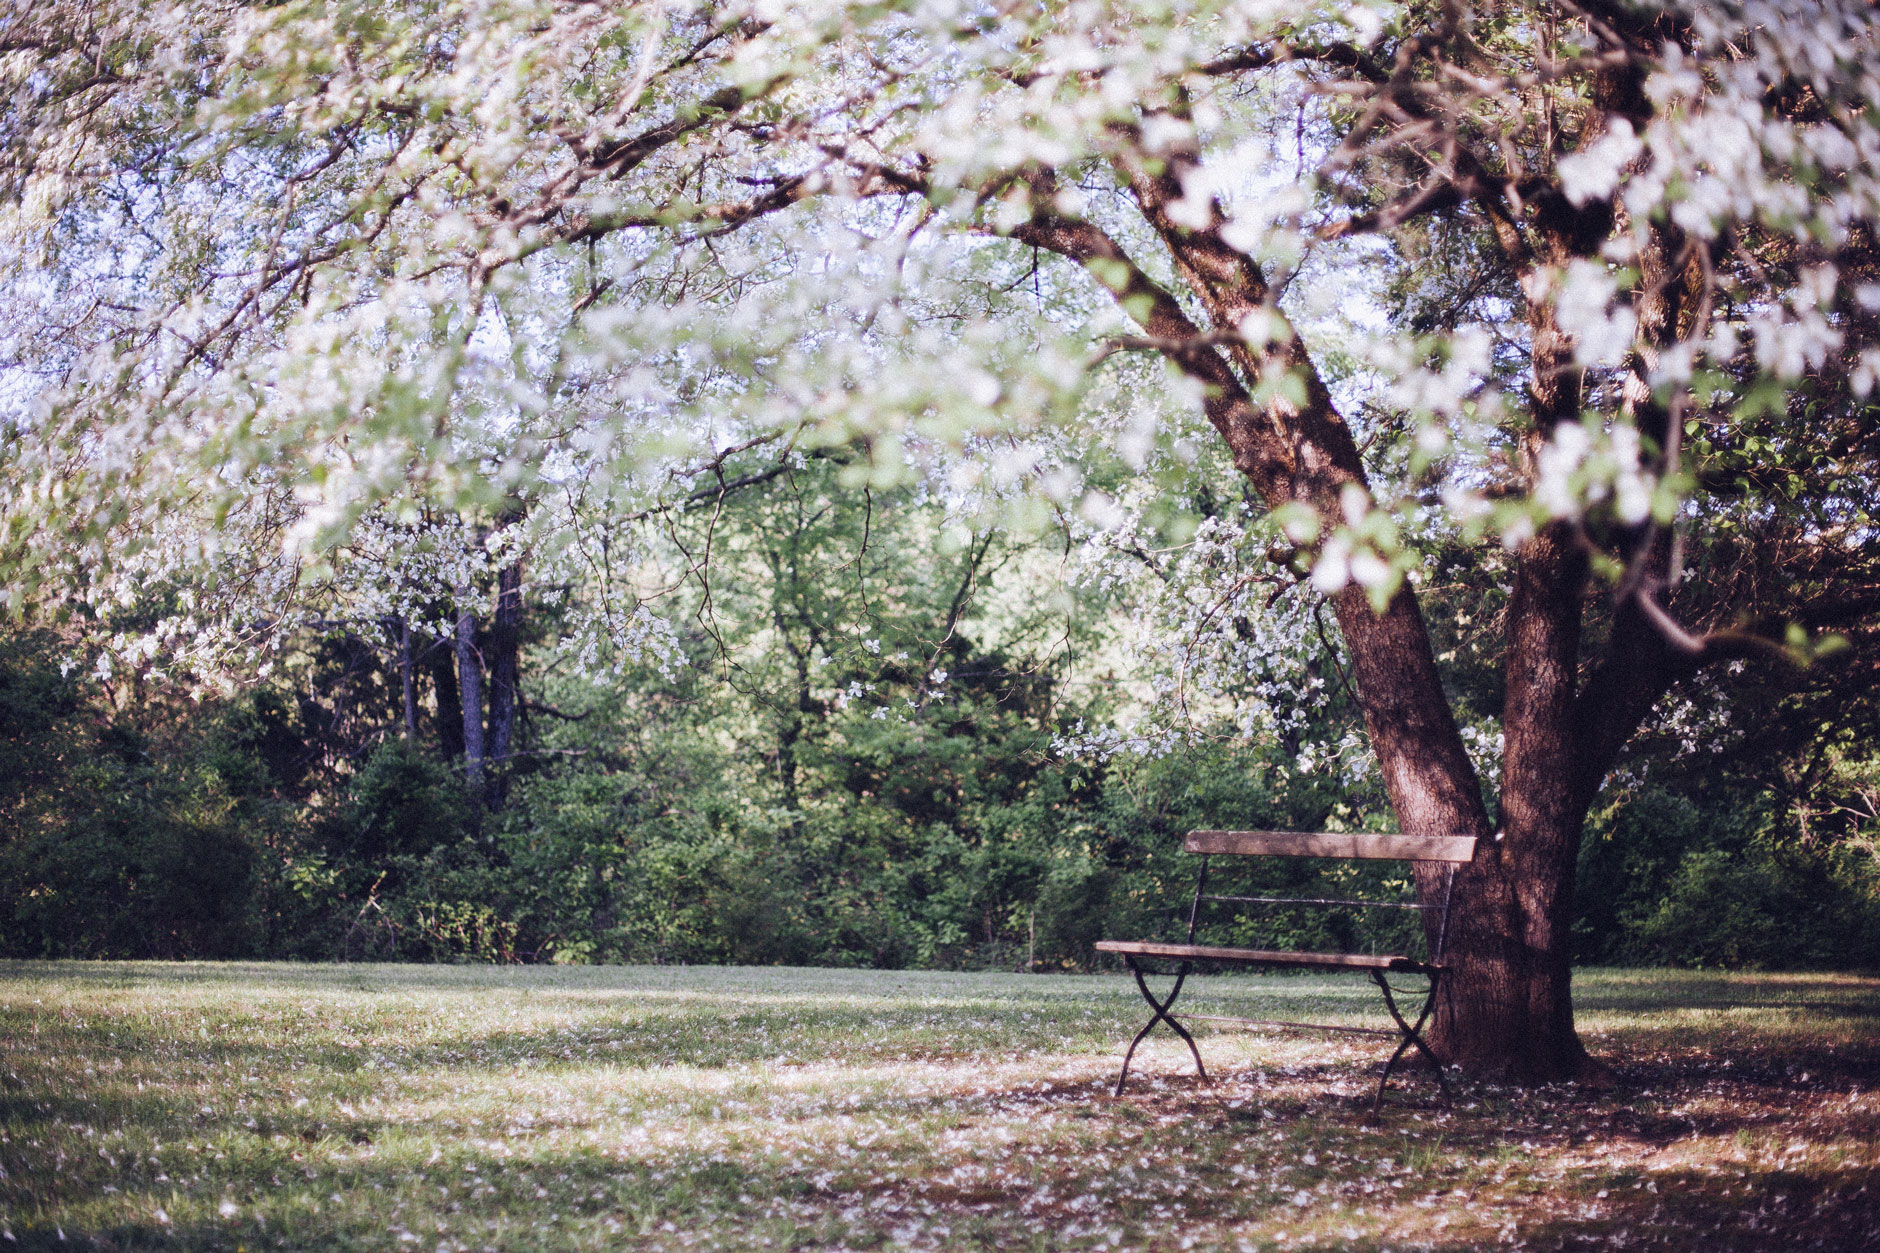 public-domain-images-free-stock-photos-tree-blossoms-bench-1 | Cleveland Professional Photography